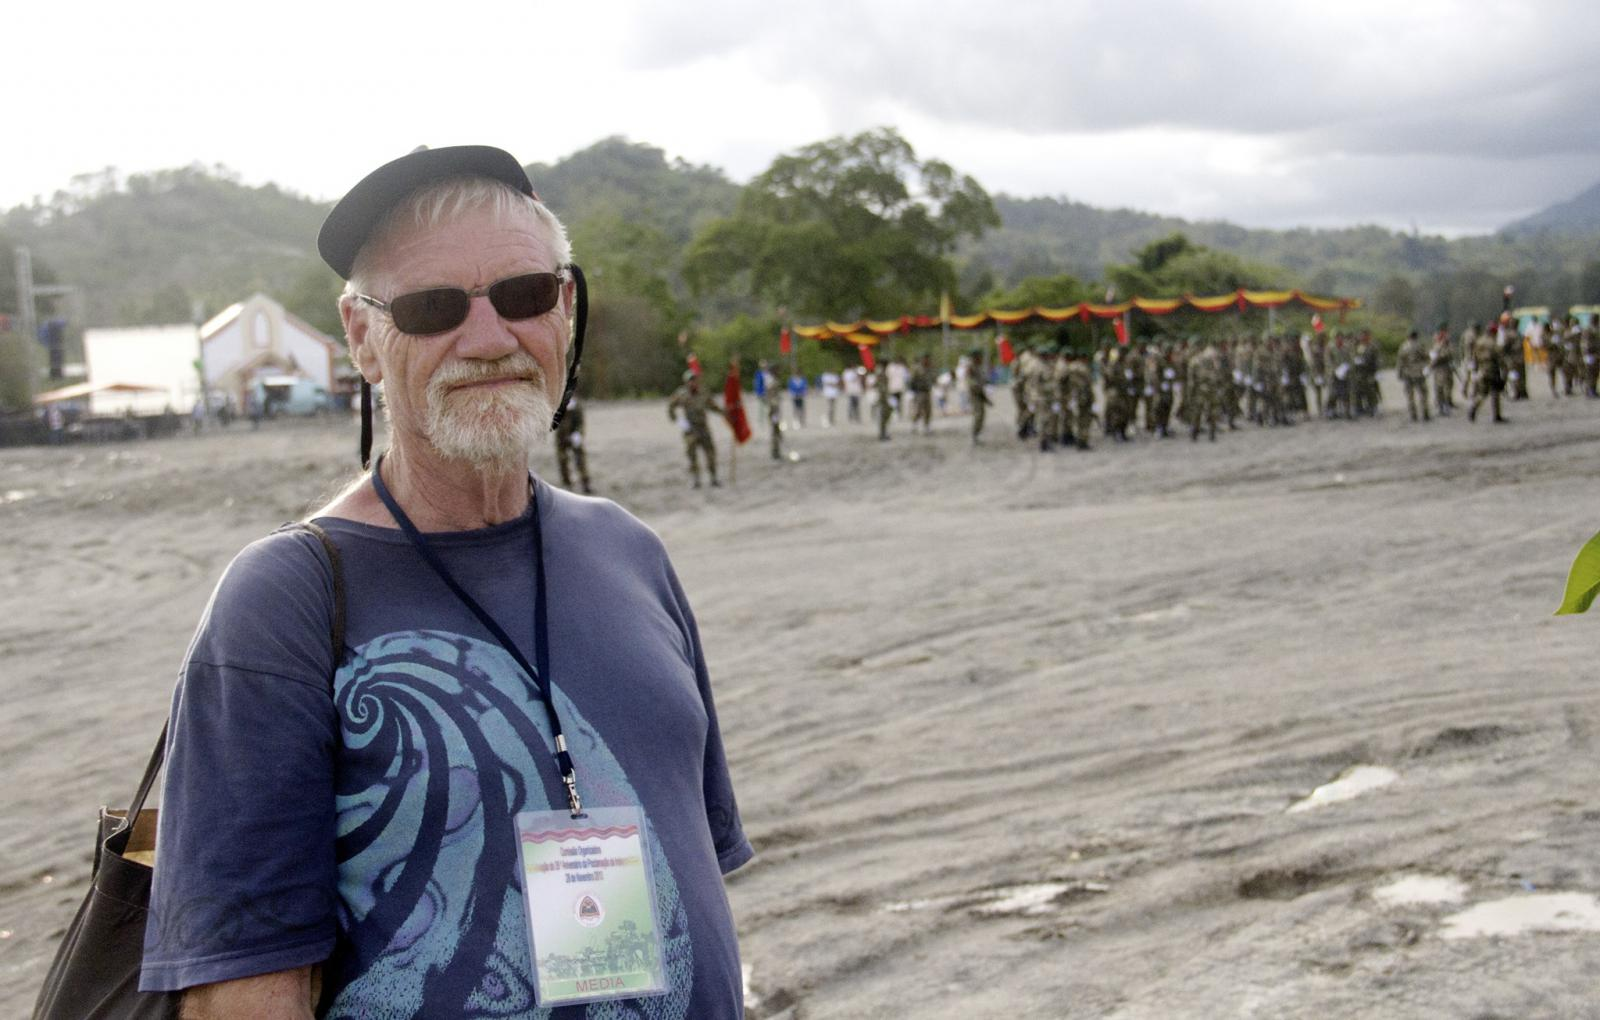 Dr David Robie on the parade ground at Kraras at the wind-up of the independence celebration. Photo: Eddy Pinto/Max Stahl Video Archive